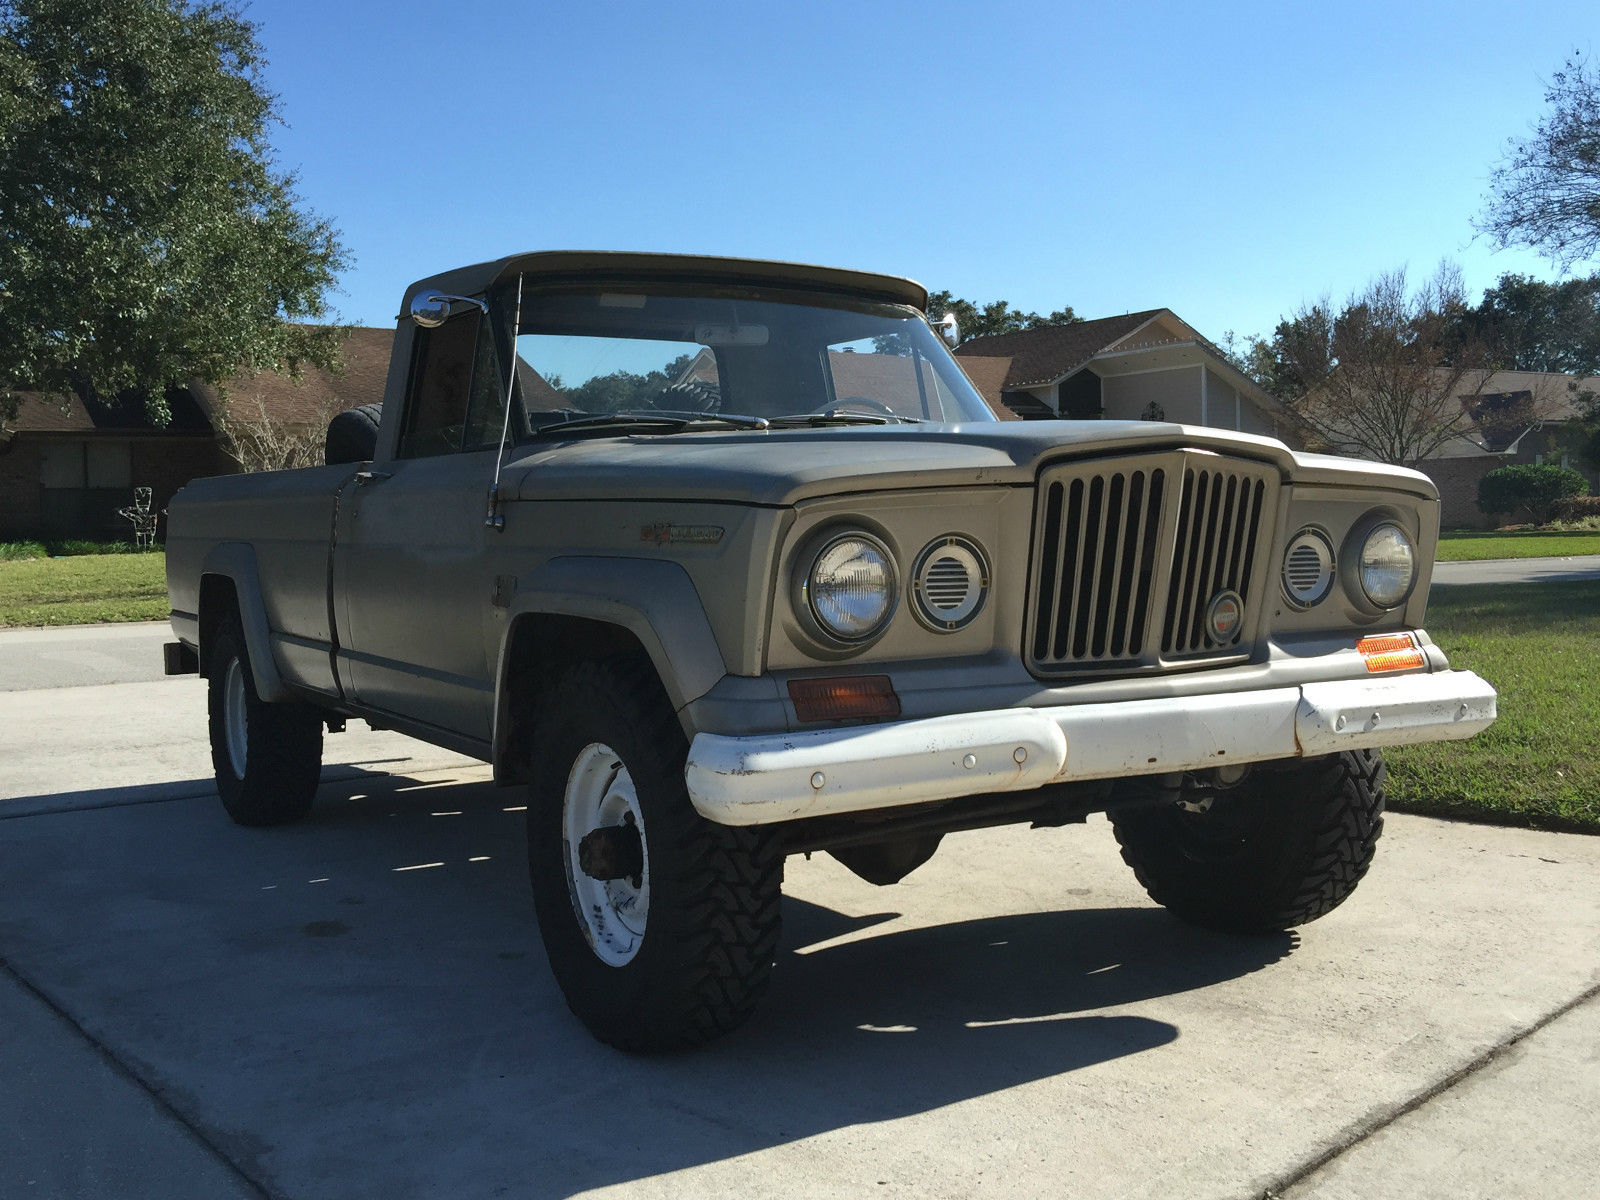 1967 jeep gladiator j10 j3000 pickup truck barn find classic jeep other 1967 for sale. Black Bedroom Furniture Sets. Home Design Ideas